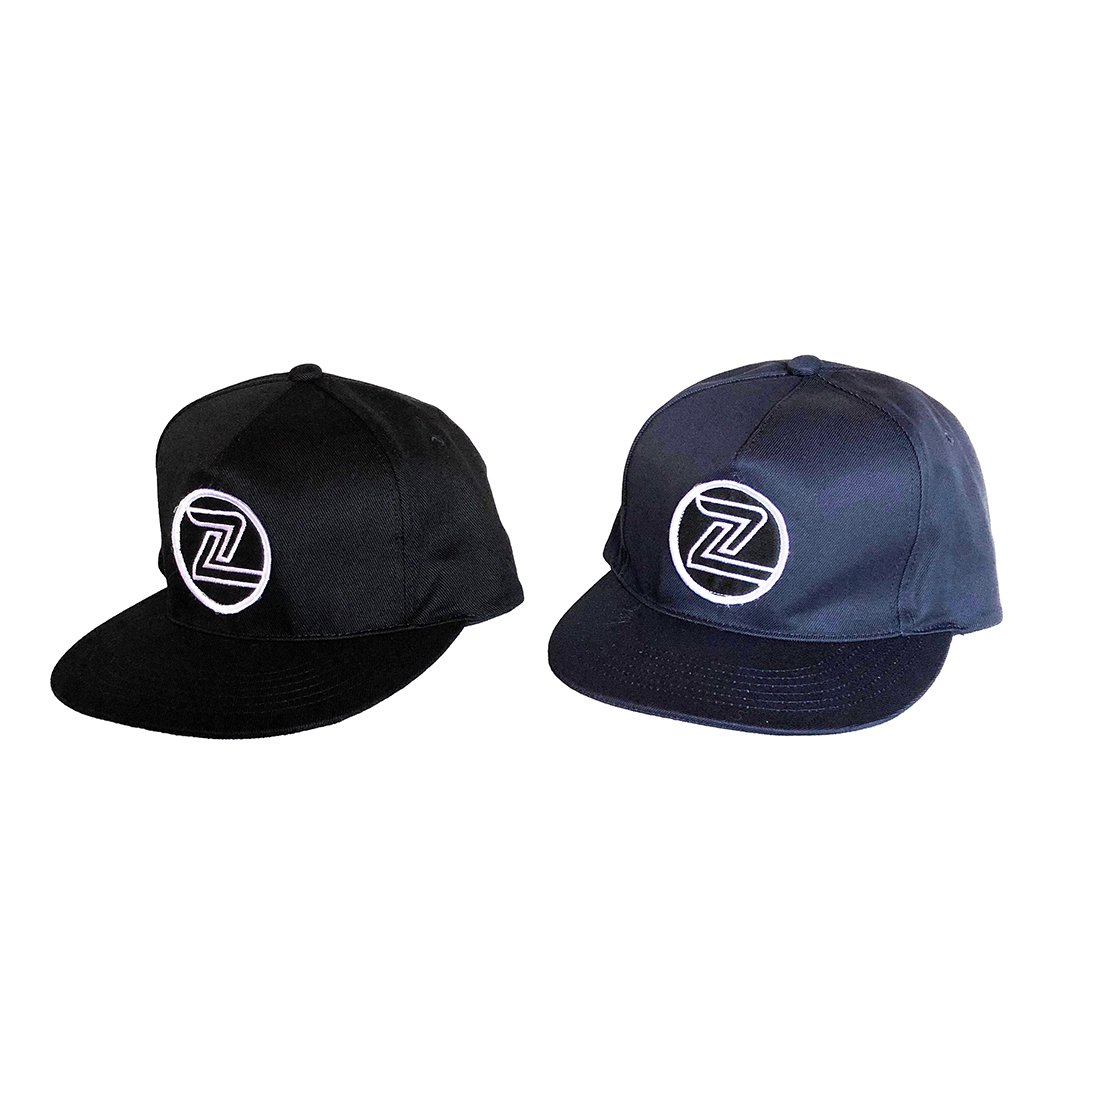 Z-FLEX Skateboards #Z-CAP